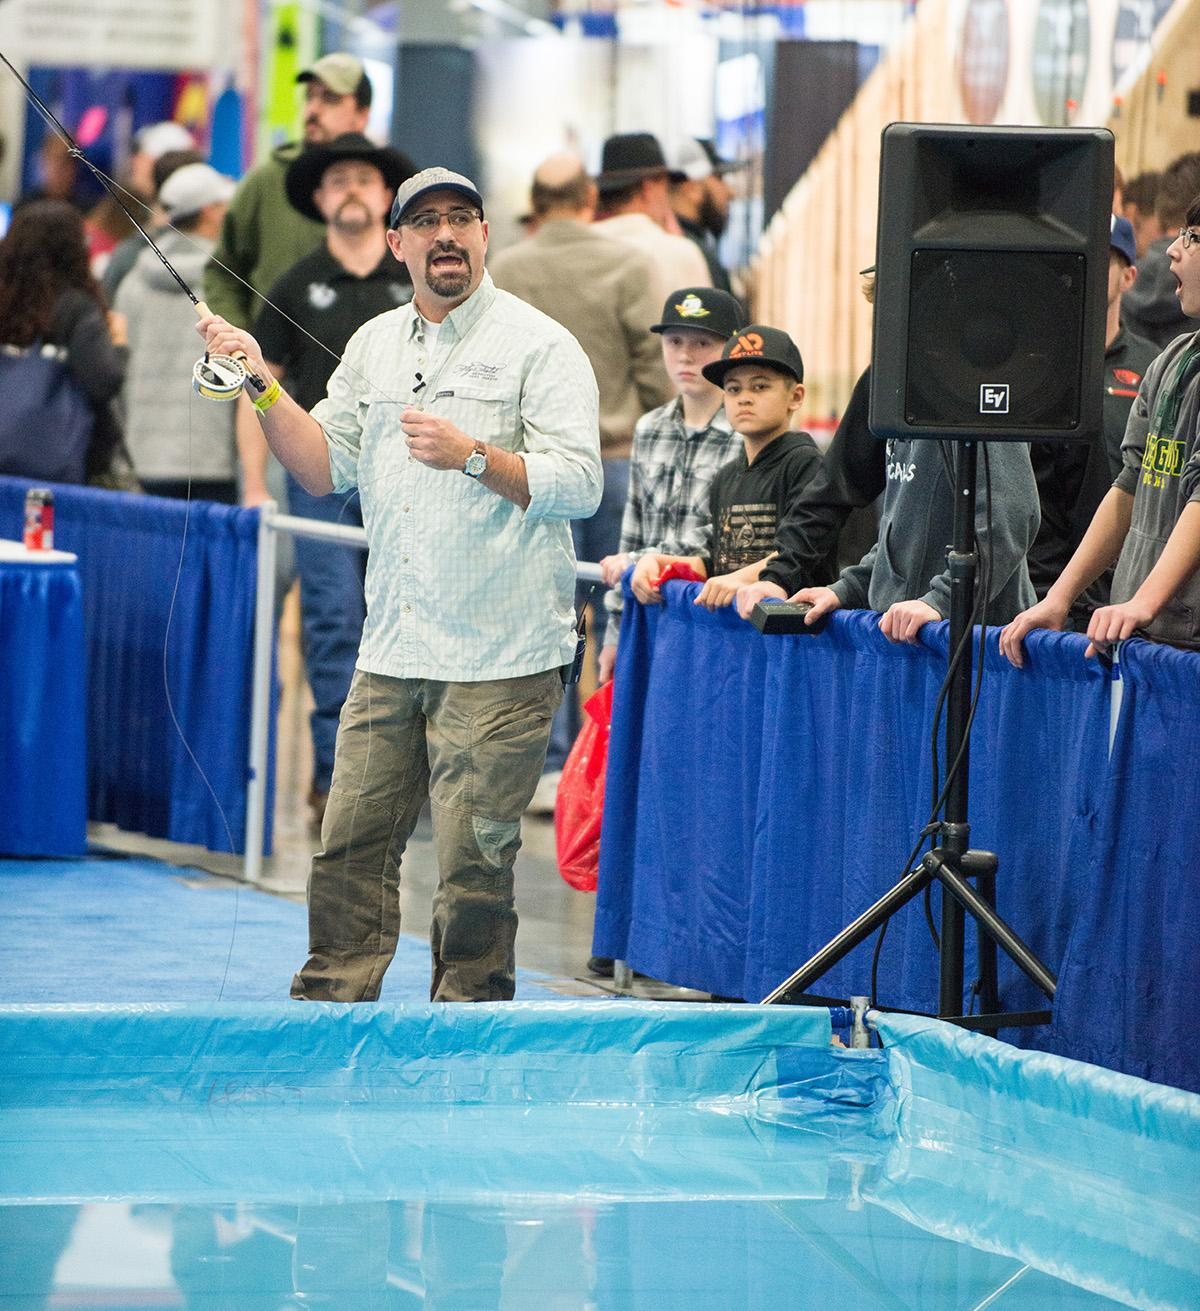 Outdoor enthusiasts filled the Portland Expo Center for the 43rd Annual Pacific Northwest Sportsmen's Show, featuring four days filled with hundreds of activities, exhibitors, vendors and demonstrations for the whole family. (KATU photo by Tristan Fortsch on February 10, 2018)